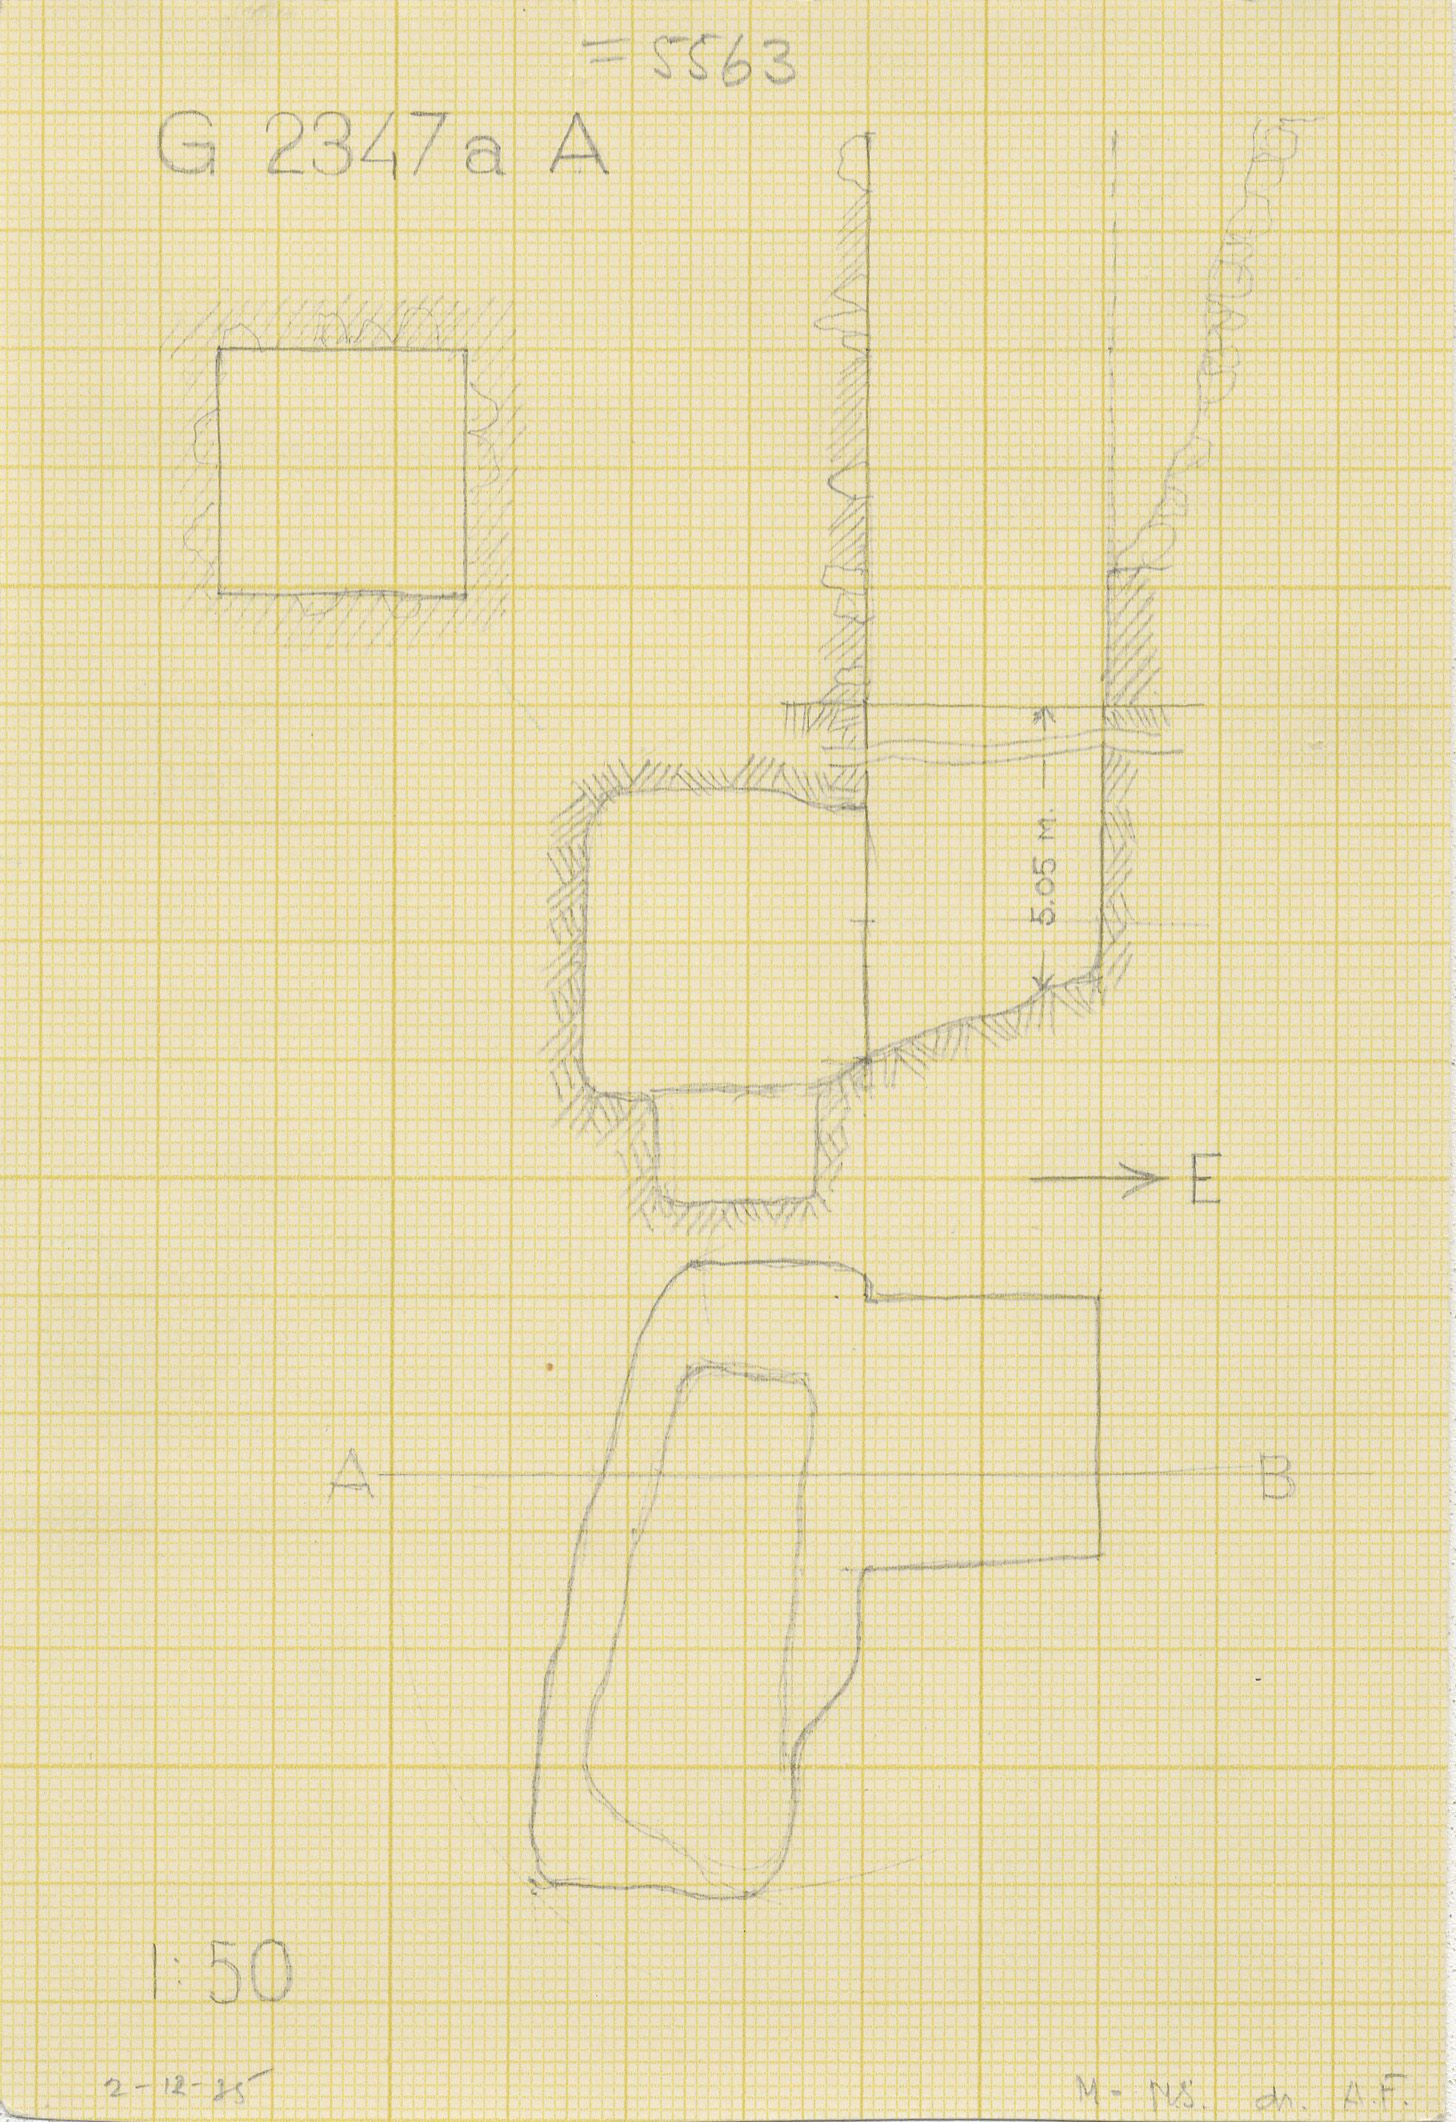 Maps and plans: G 2347a A = G 5563, Shaft A